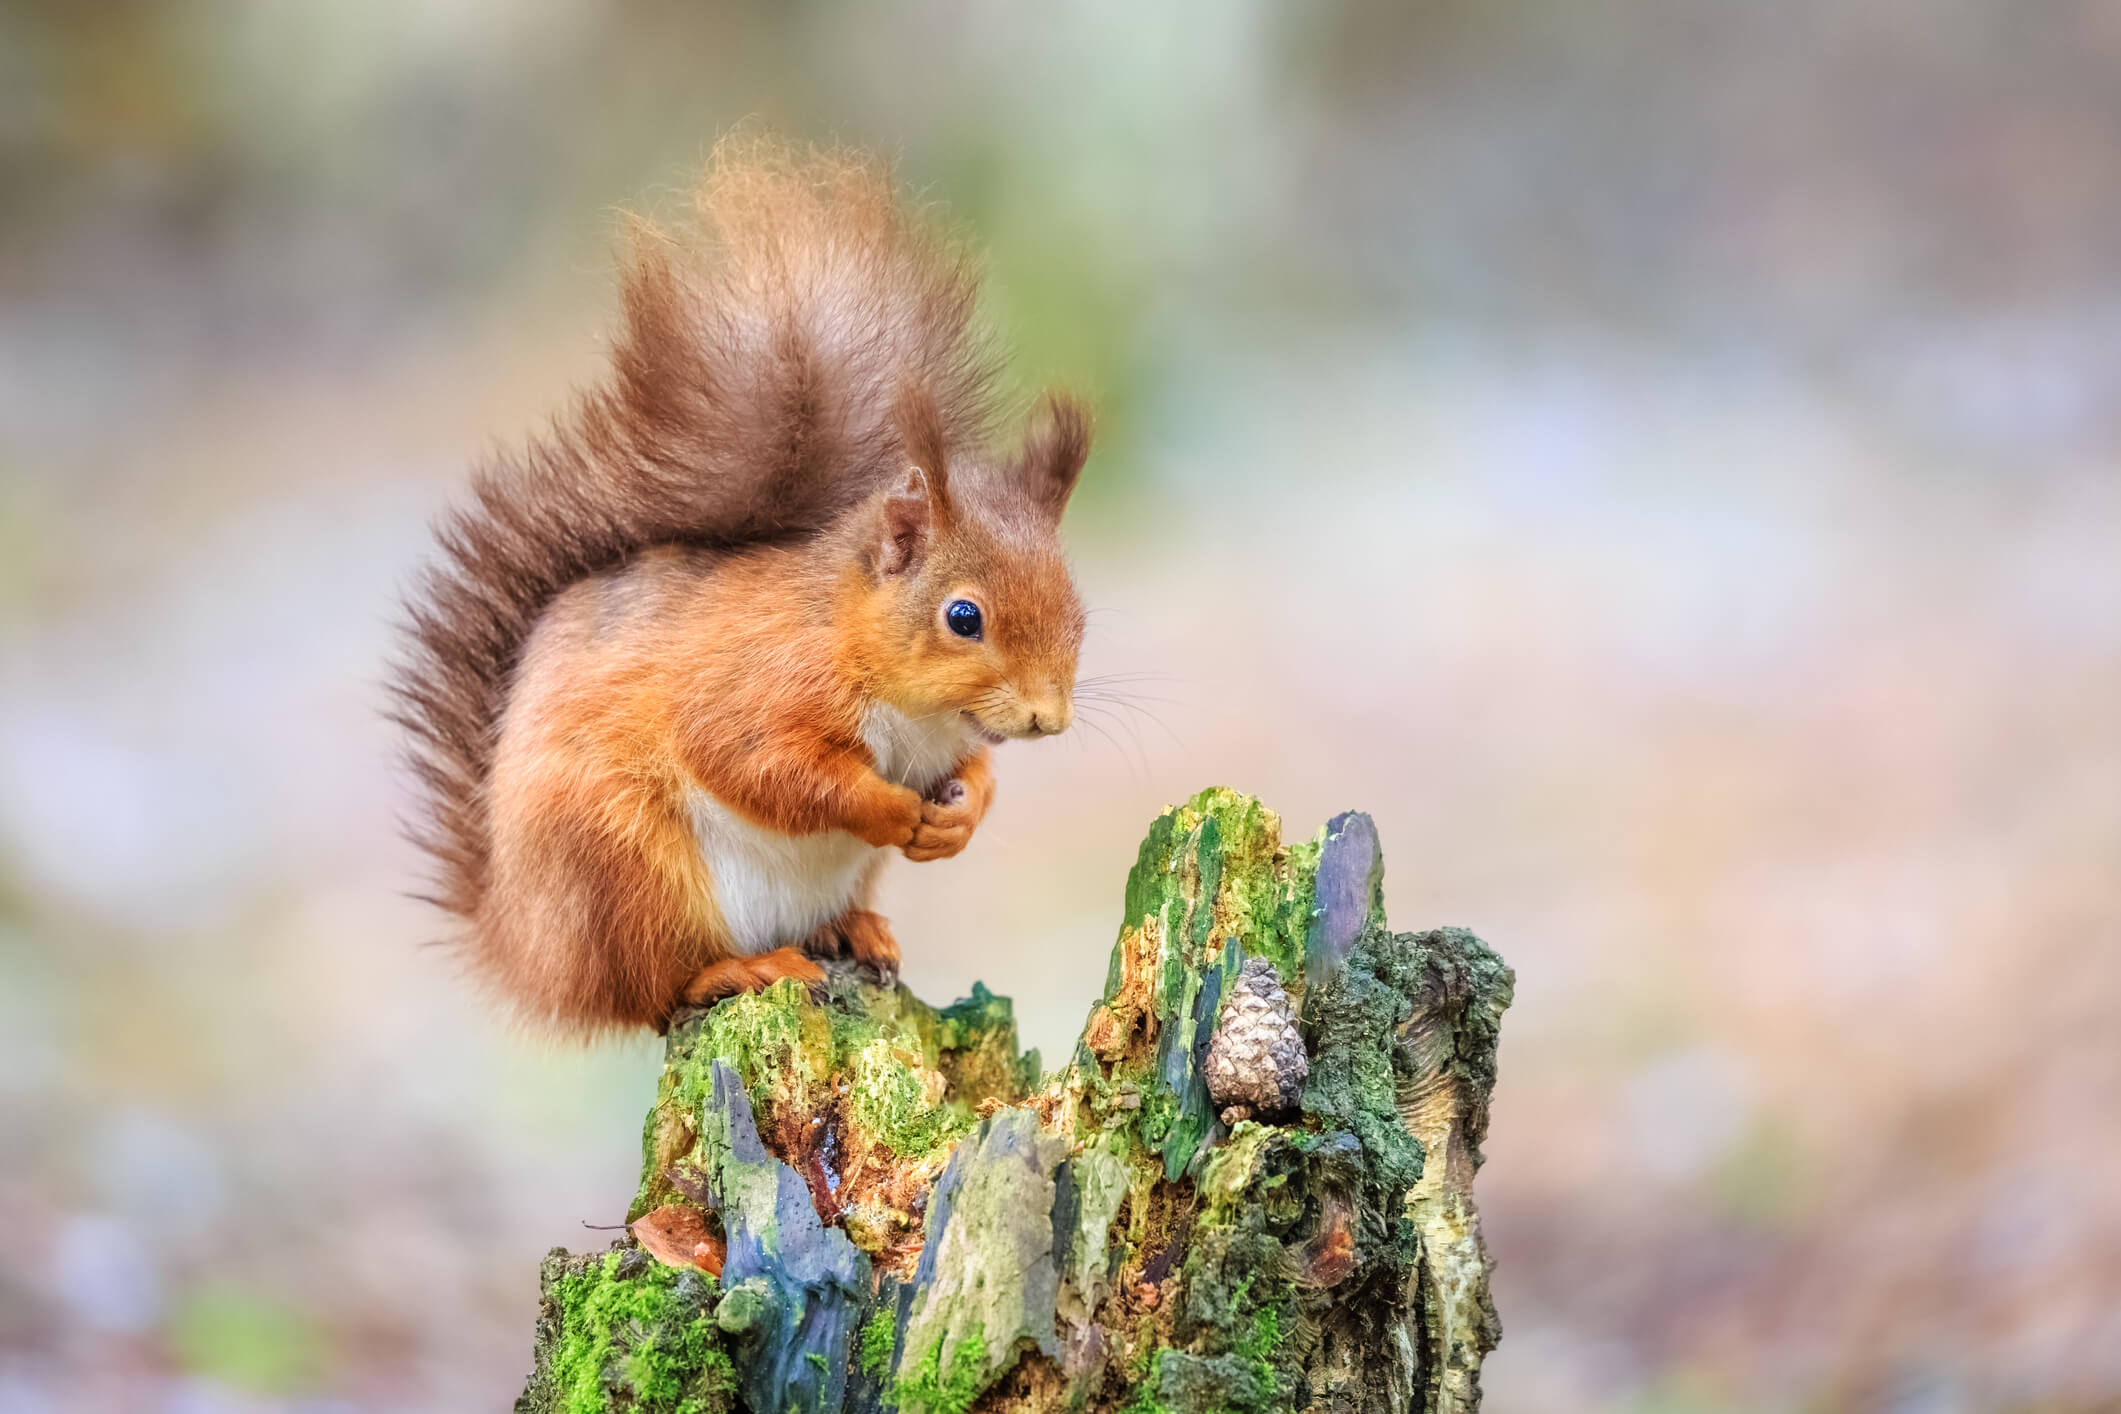 Cute red squirrel sitting in forest, England